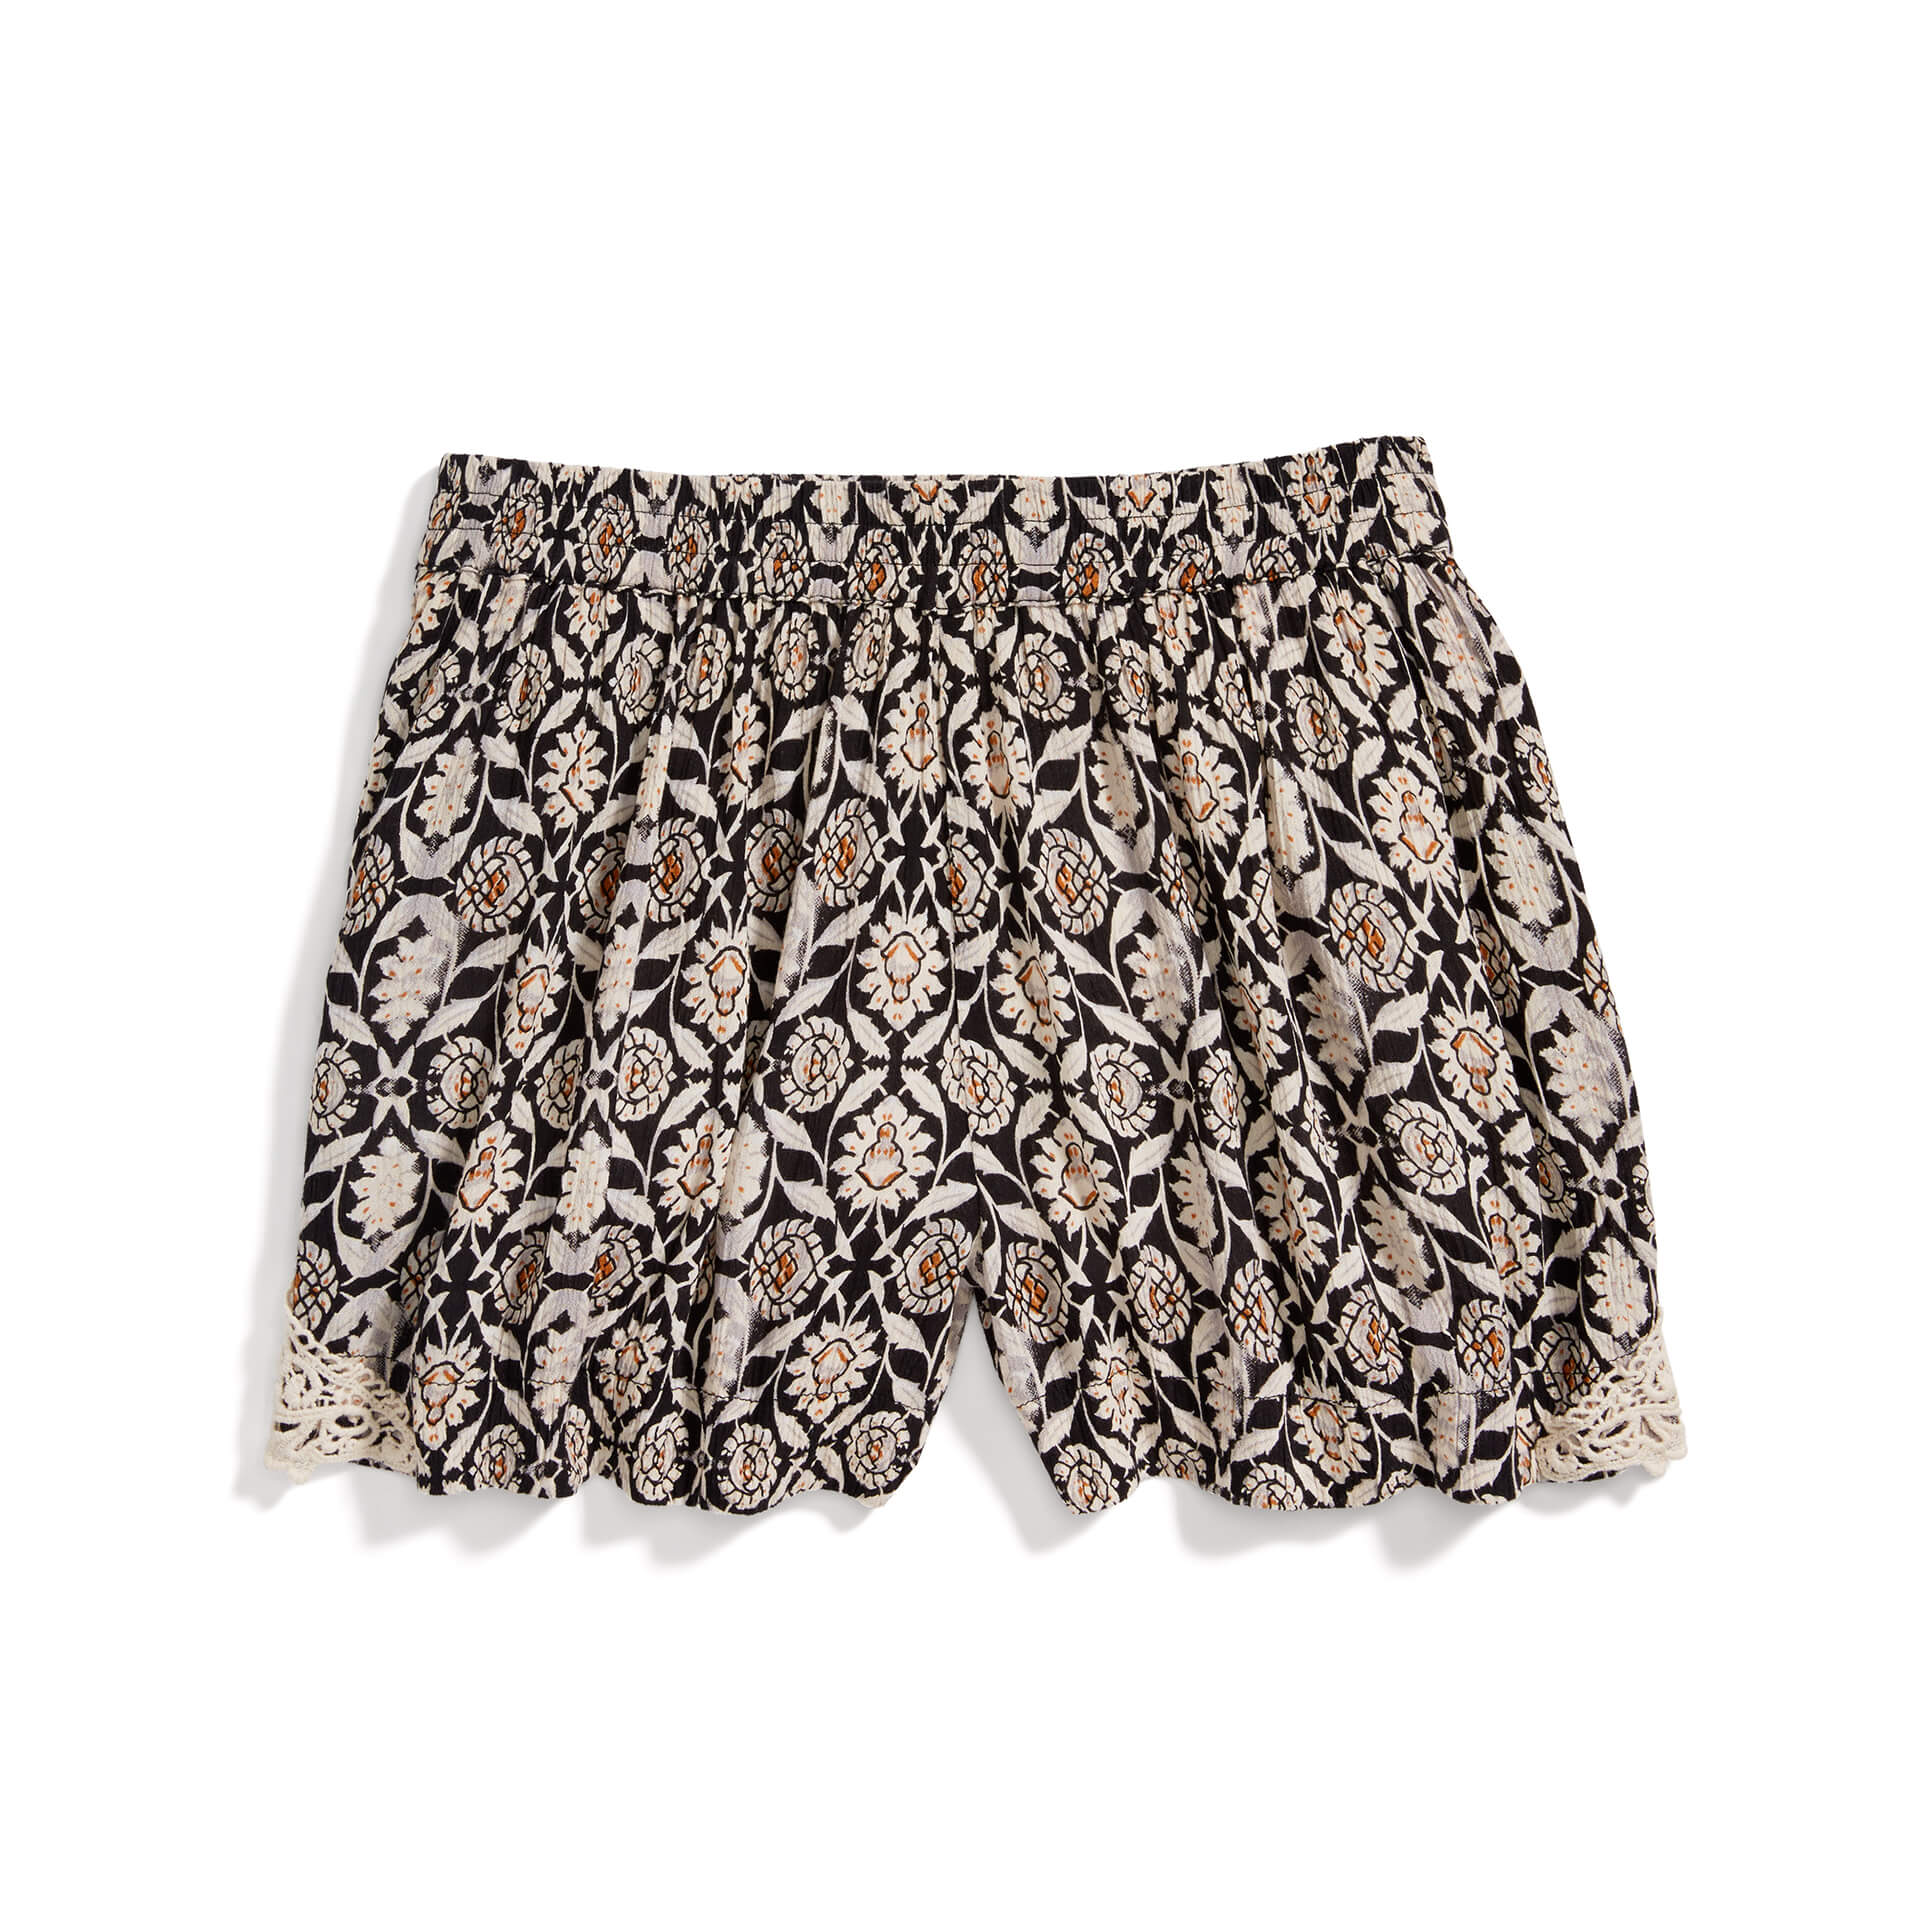 Stitch Fix Shorts